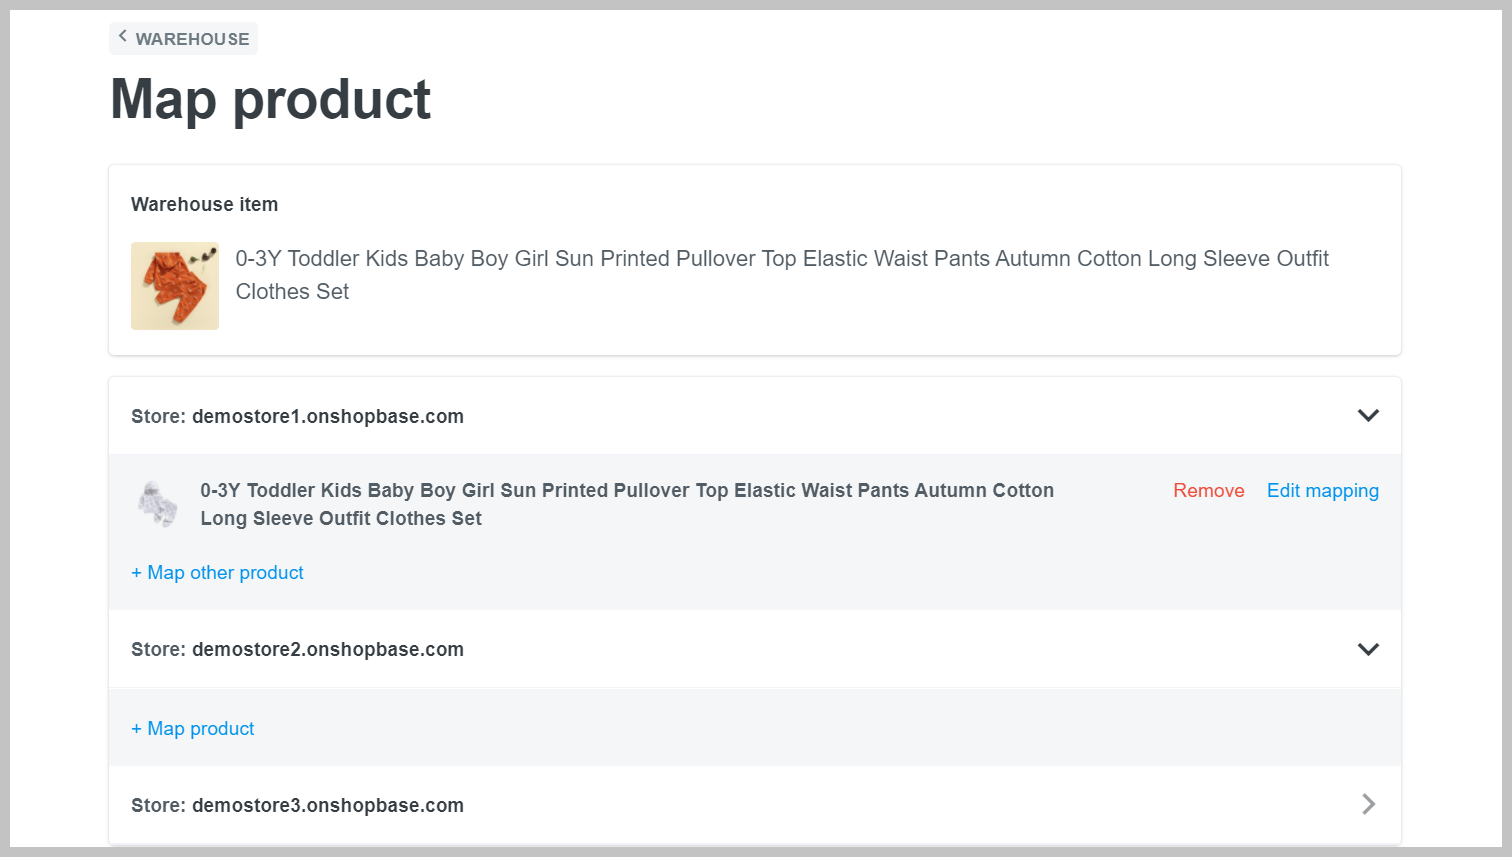 Product mapping page